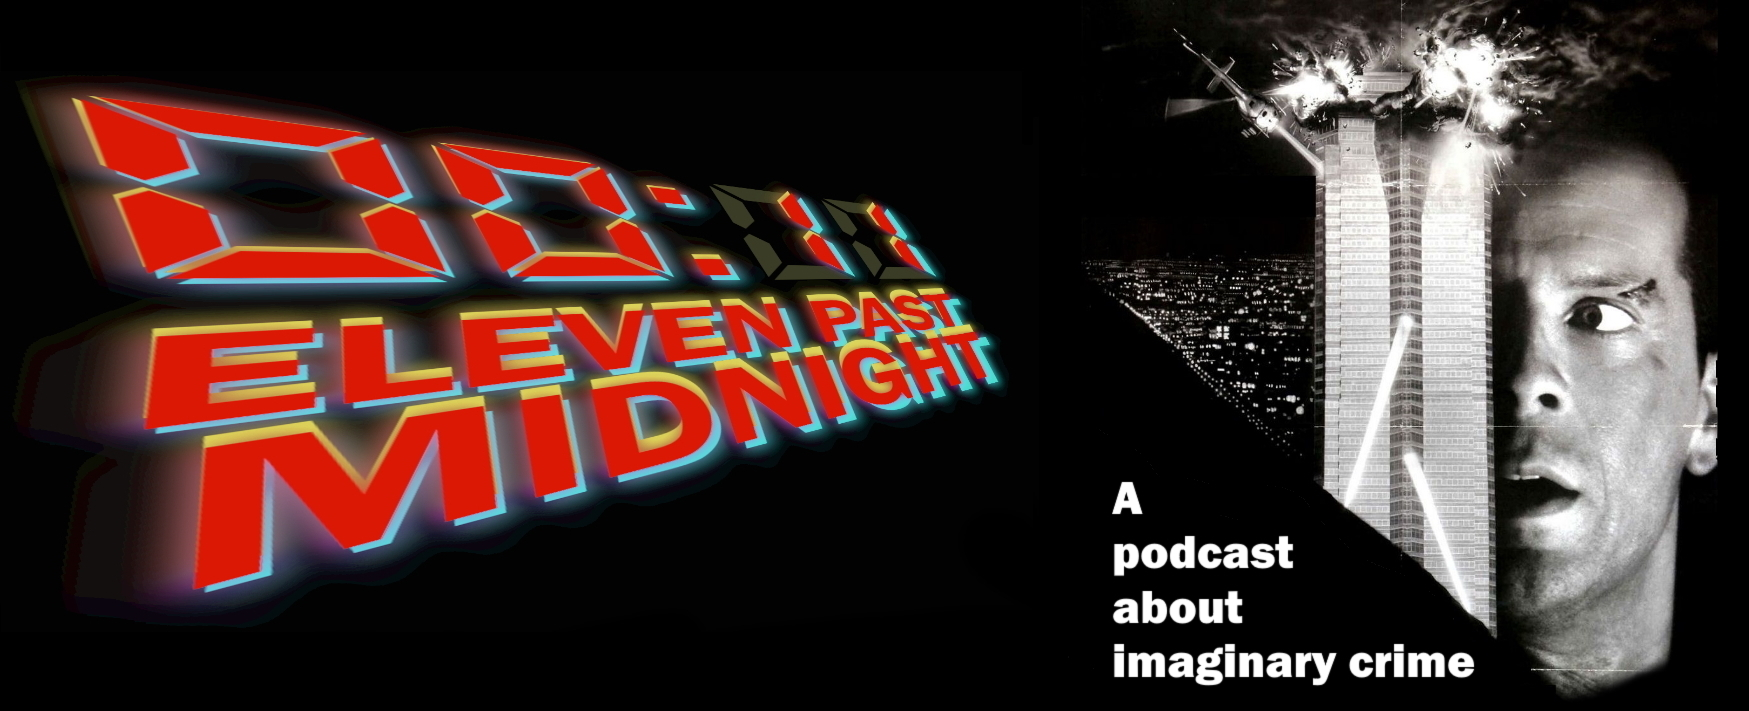 Eleven Past Midnight podcast - episode 1